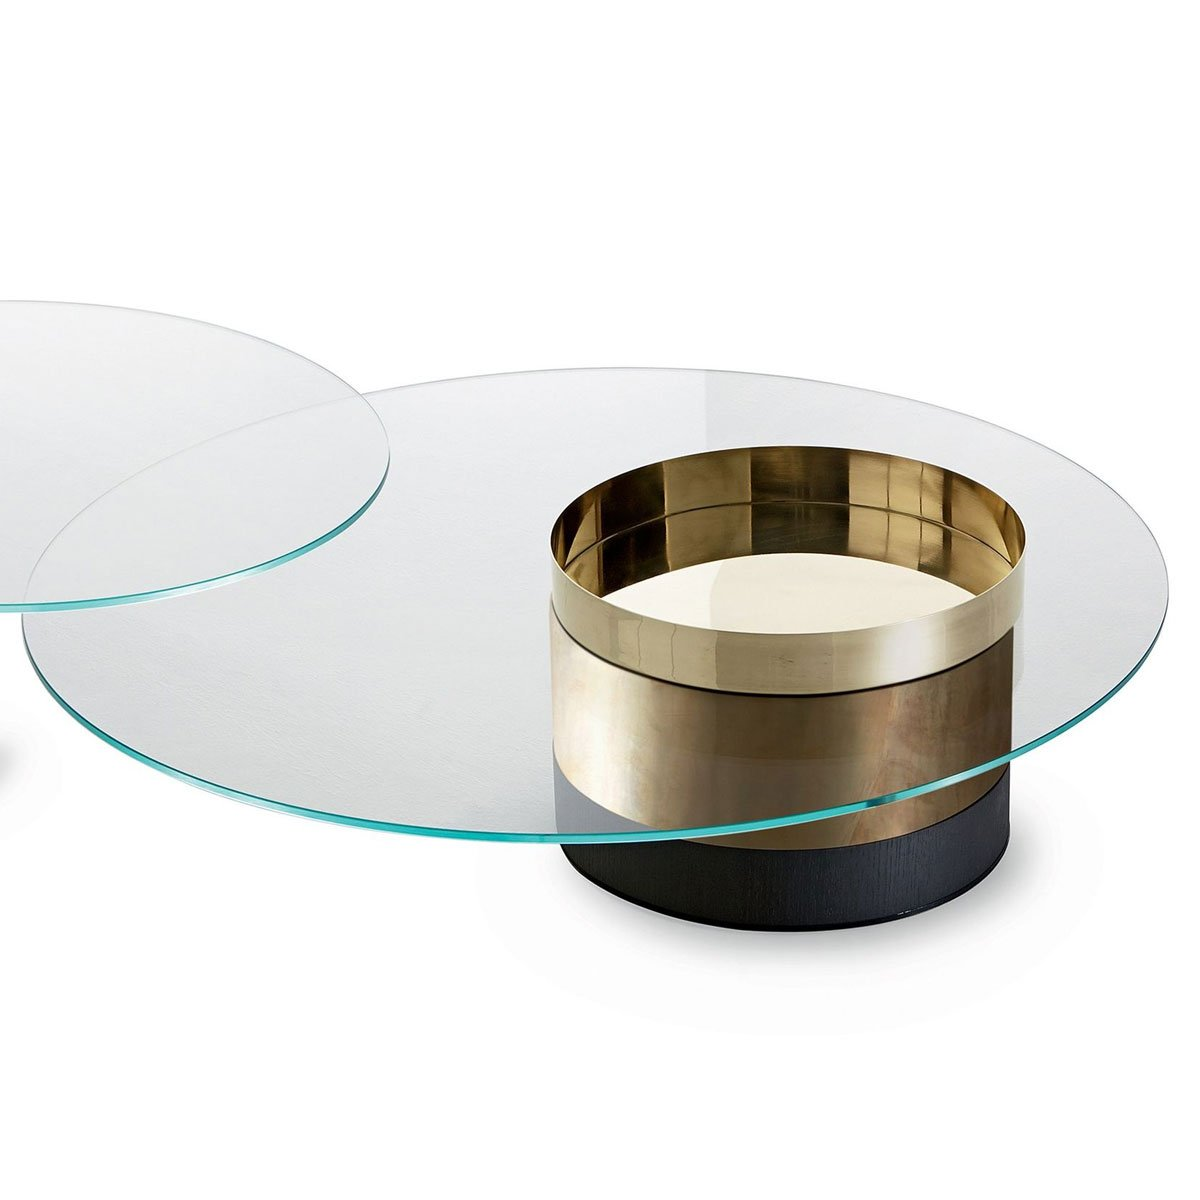 Haumea Glass And Metal Coffee Table By Gallotti & Radice. Glass Base Table Lamps. Rustic Desk For Sale. Disney Princess Desk. 7 Foot Dining Table. Drawer Microwaves Ovens. Antique Kitchen Table. Coffee Table Pier One. Little Tables